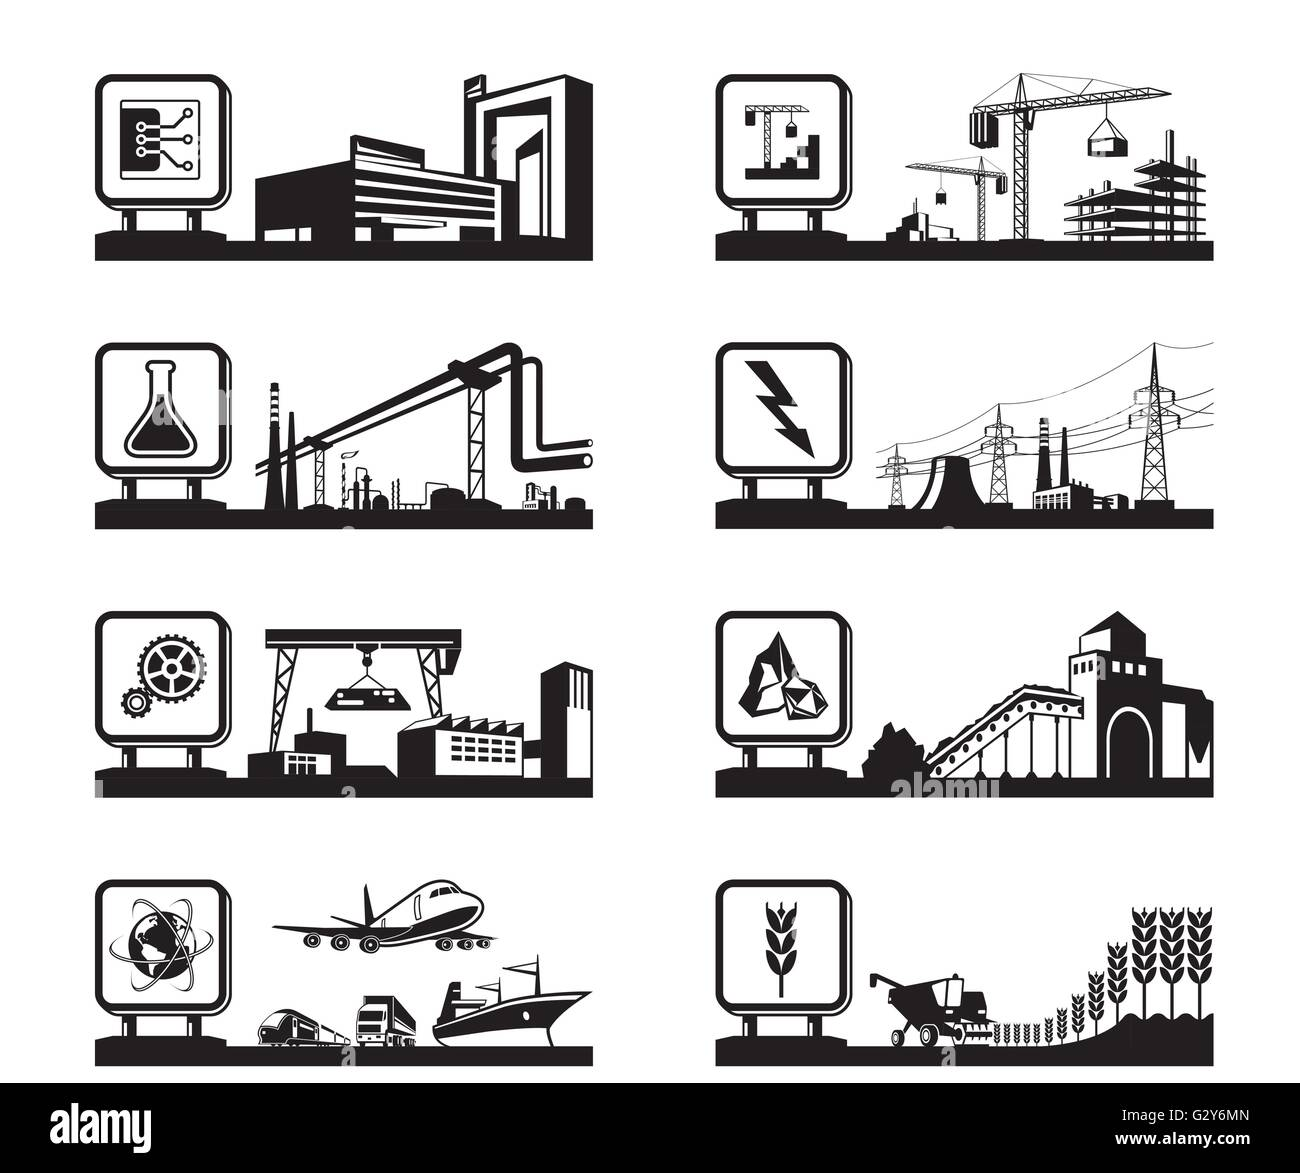 Different industries with logos - vector illustration - Stock Image